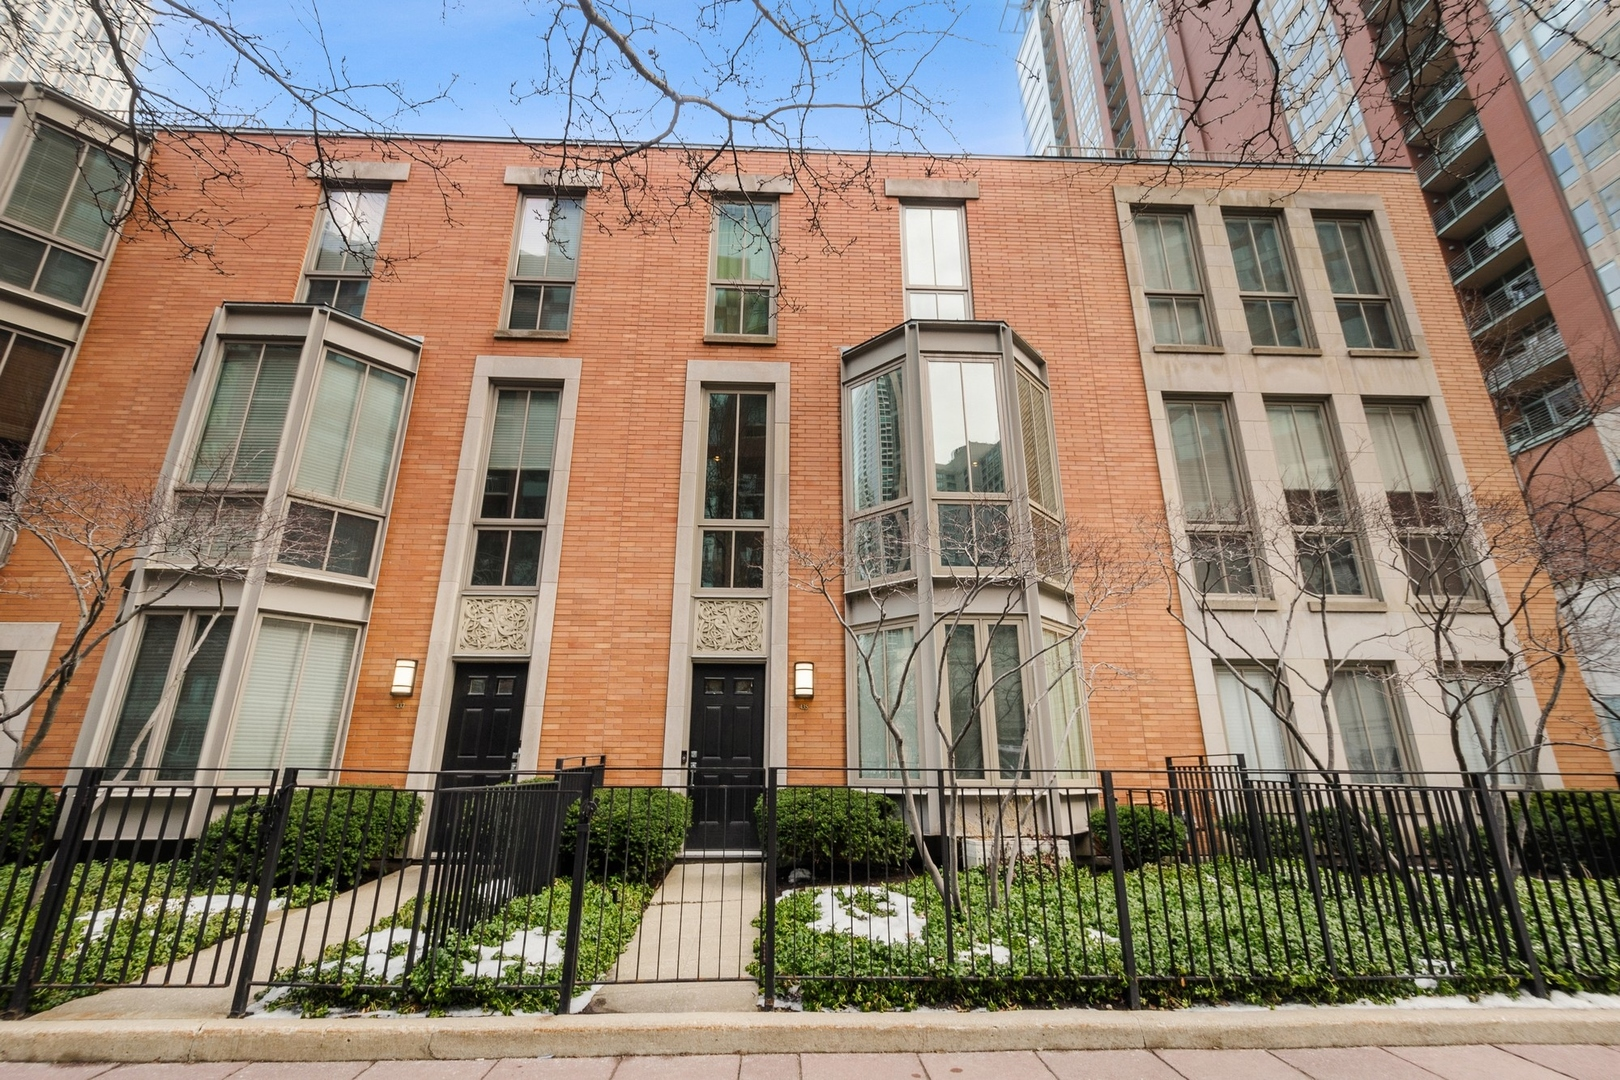 435 Mcclurg ,Chicago, Illinois 60611